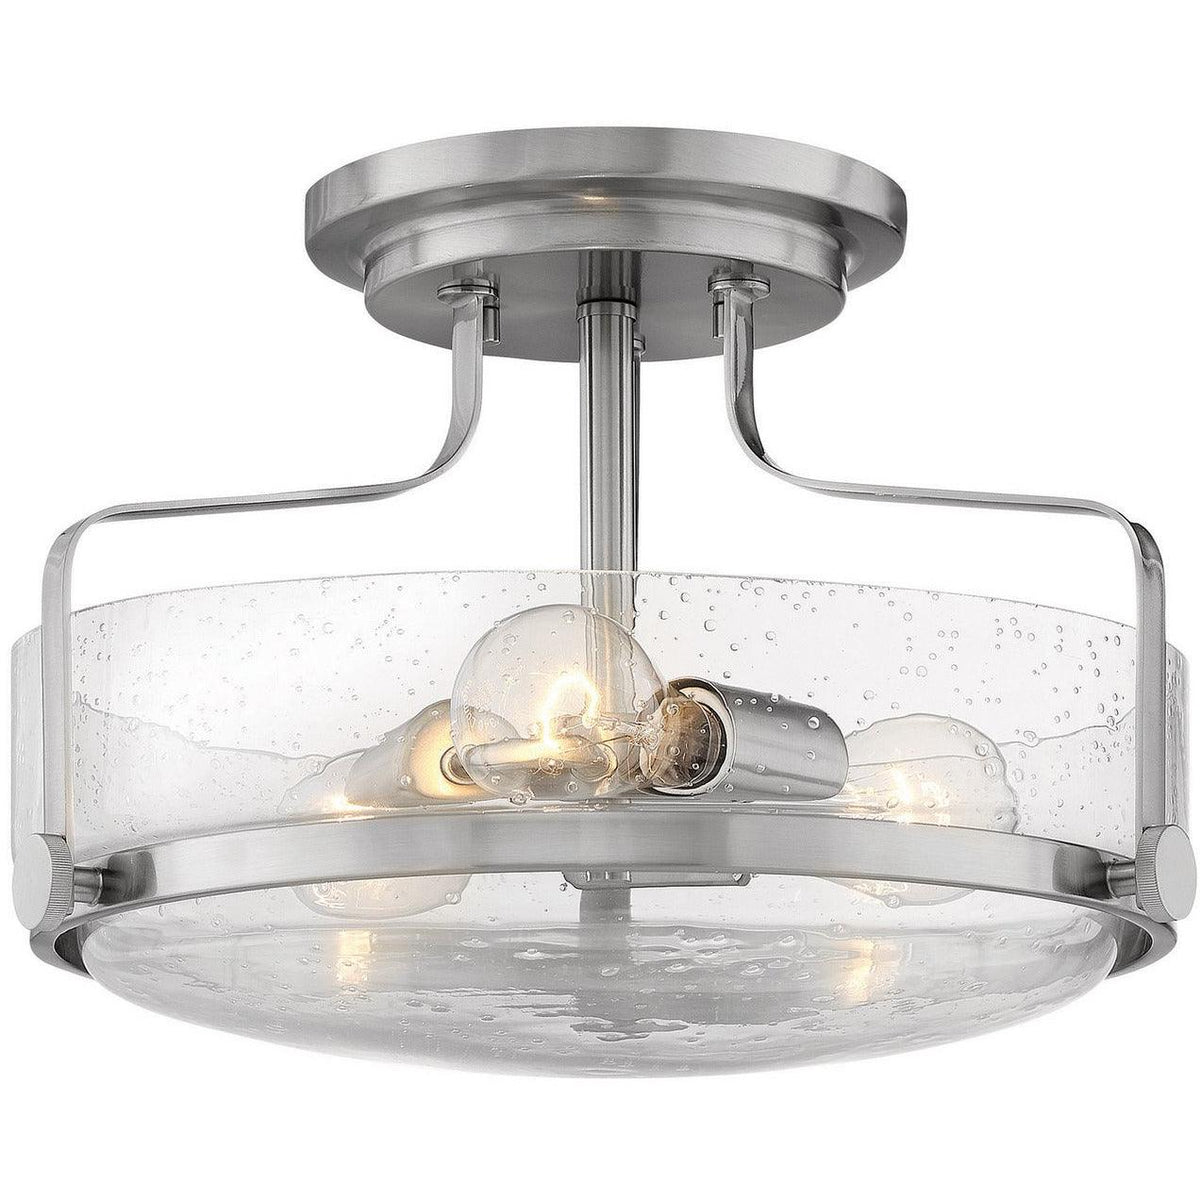 Hinkley Canada - 3641BN-CS - Three Light Semi-Flush Mount - Harper - Brushed Nickel With Clear Seedy Glass